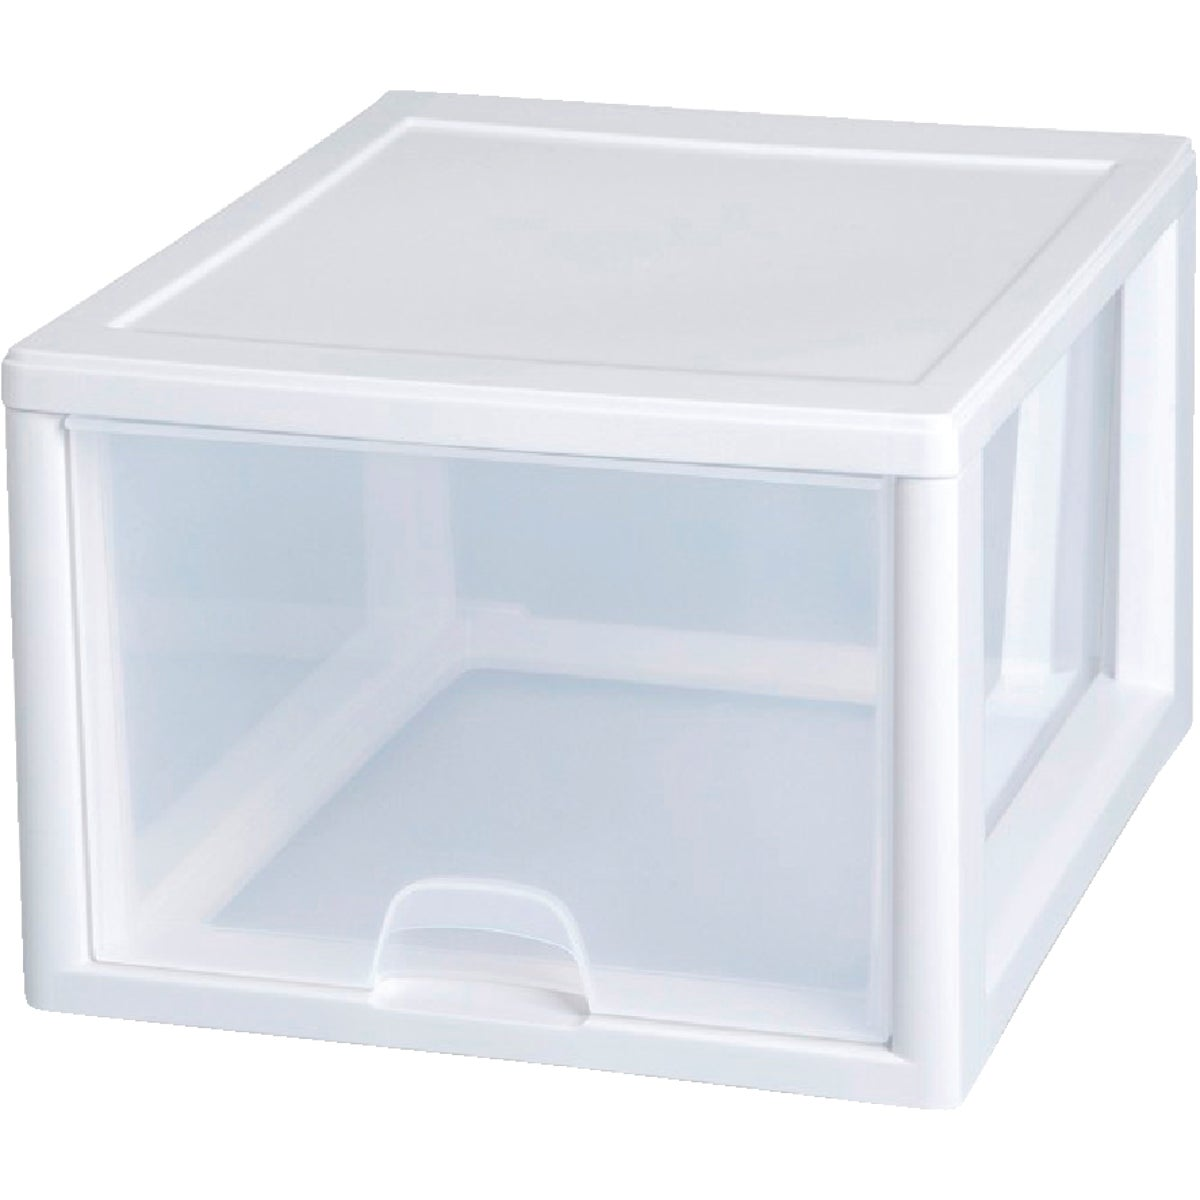 27QT STORAGE DRAWER - 23108004 by Sterilite Corp